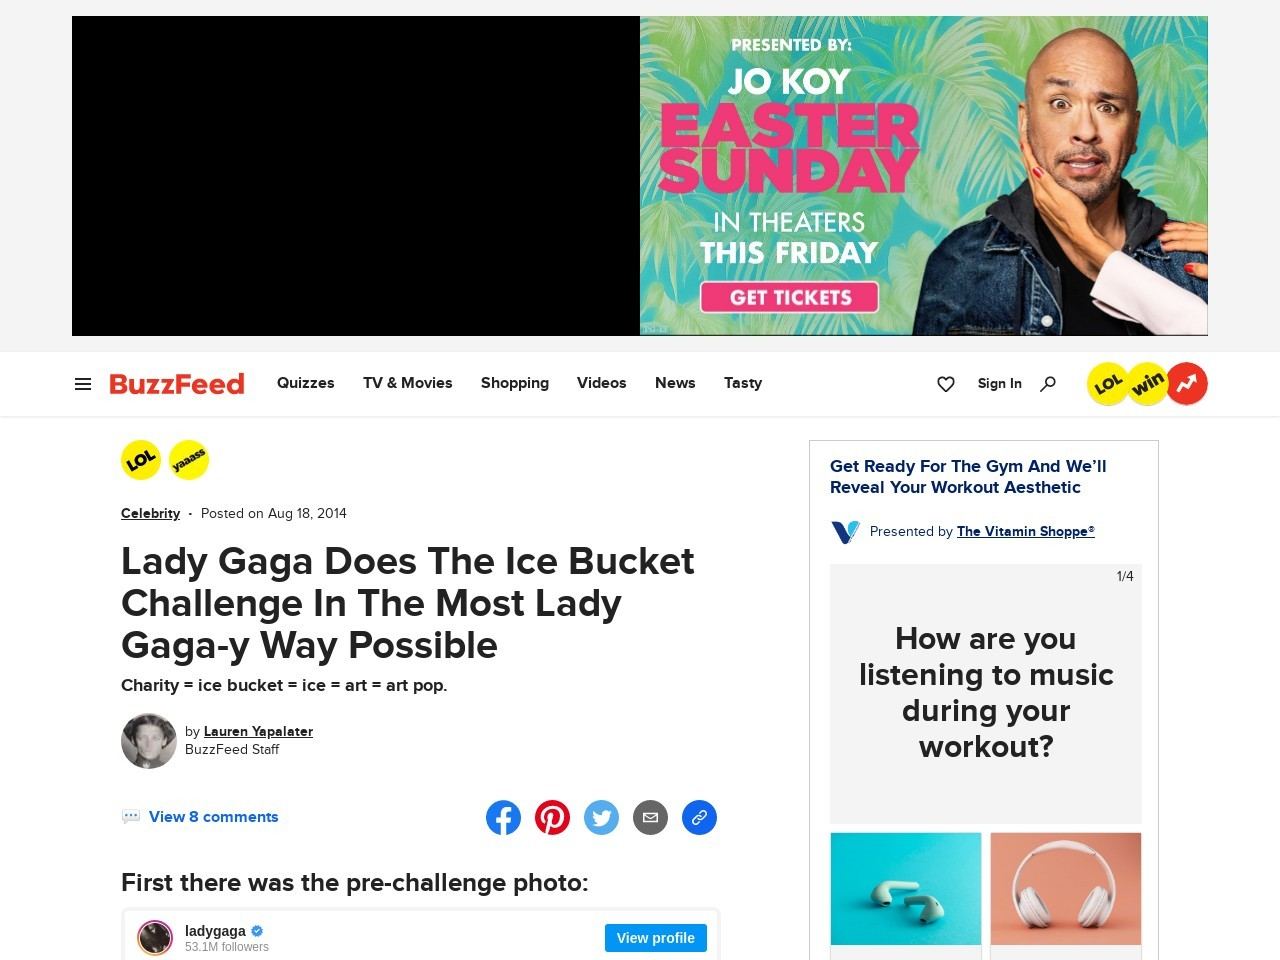 Lady Gaga Does The Ice Bucket Challenge In The Most Lady Gaga-y Way Possible